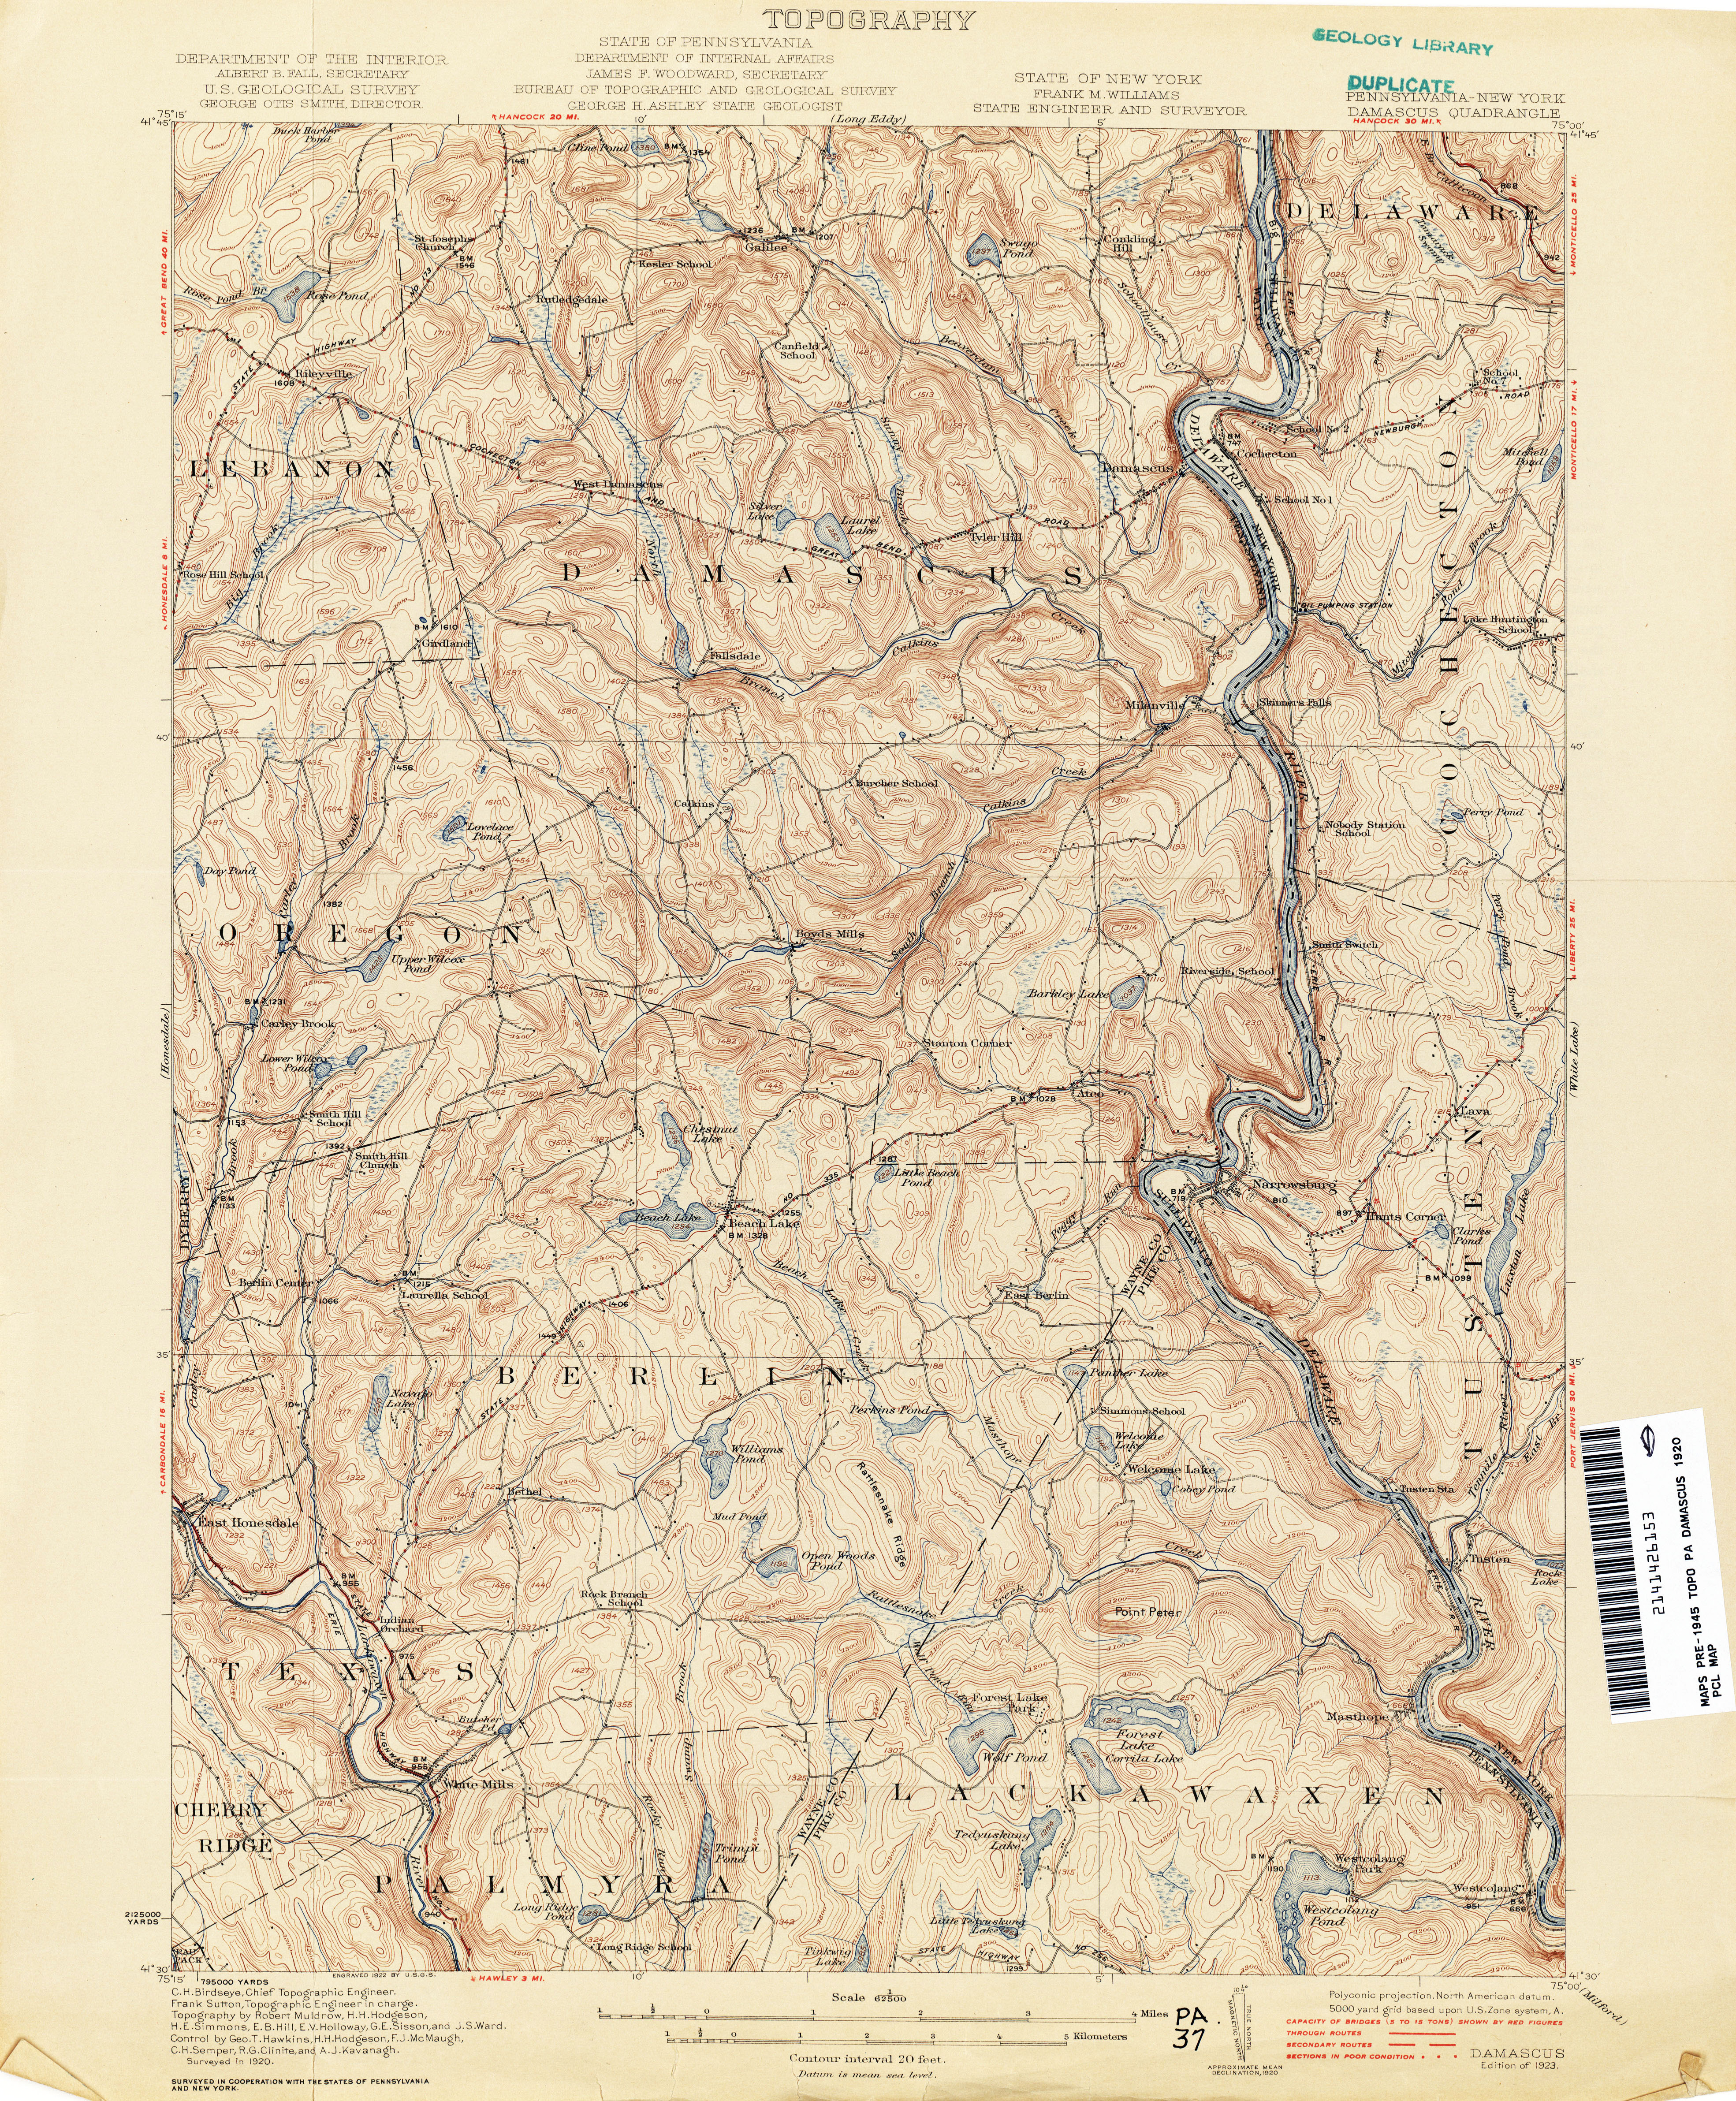 York County Pa Map Of Lakes on map of chester county pa, map of douglas county or, map of york city pa, map of pennsylvania, map of warren county pa, map of baltimore county pa, map of potter county pa, map of franklin county pa, map of york college pa, map of grafton, il, map of cumberland county pa, cities in lebanon county pa, map of san diego county ca, map of new castle county de, map of york county nc, events of york county pa, map of adams county pa, map of mckean county pa, map of york county ne, map of erie county pa,